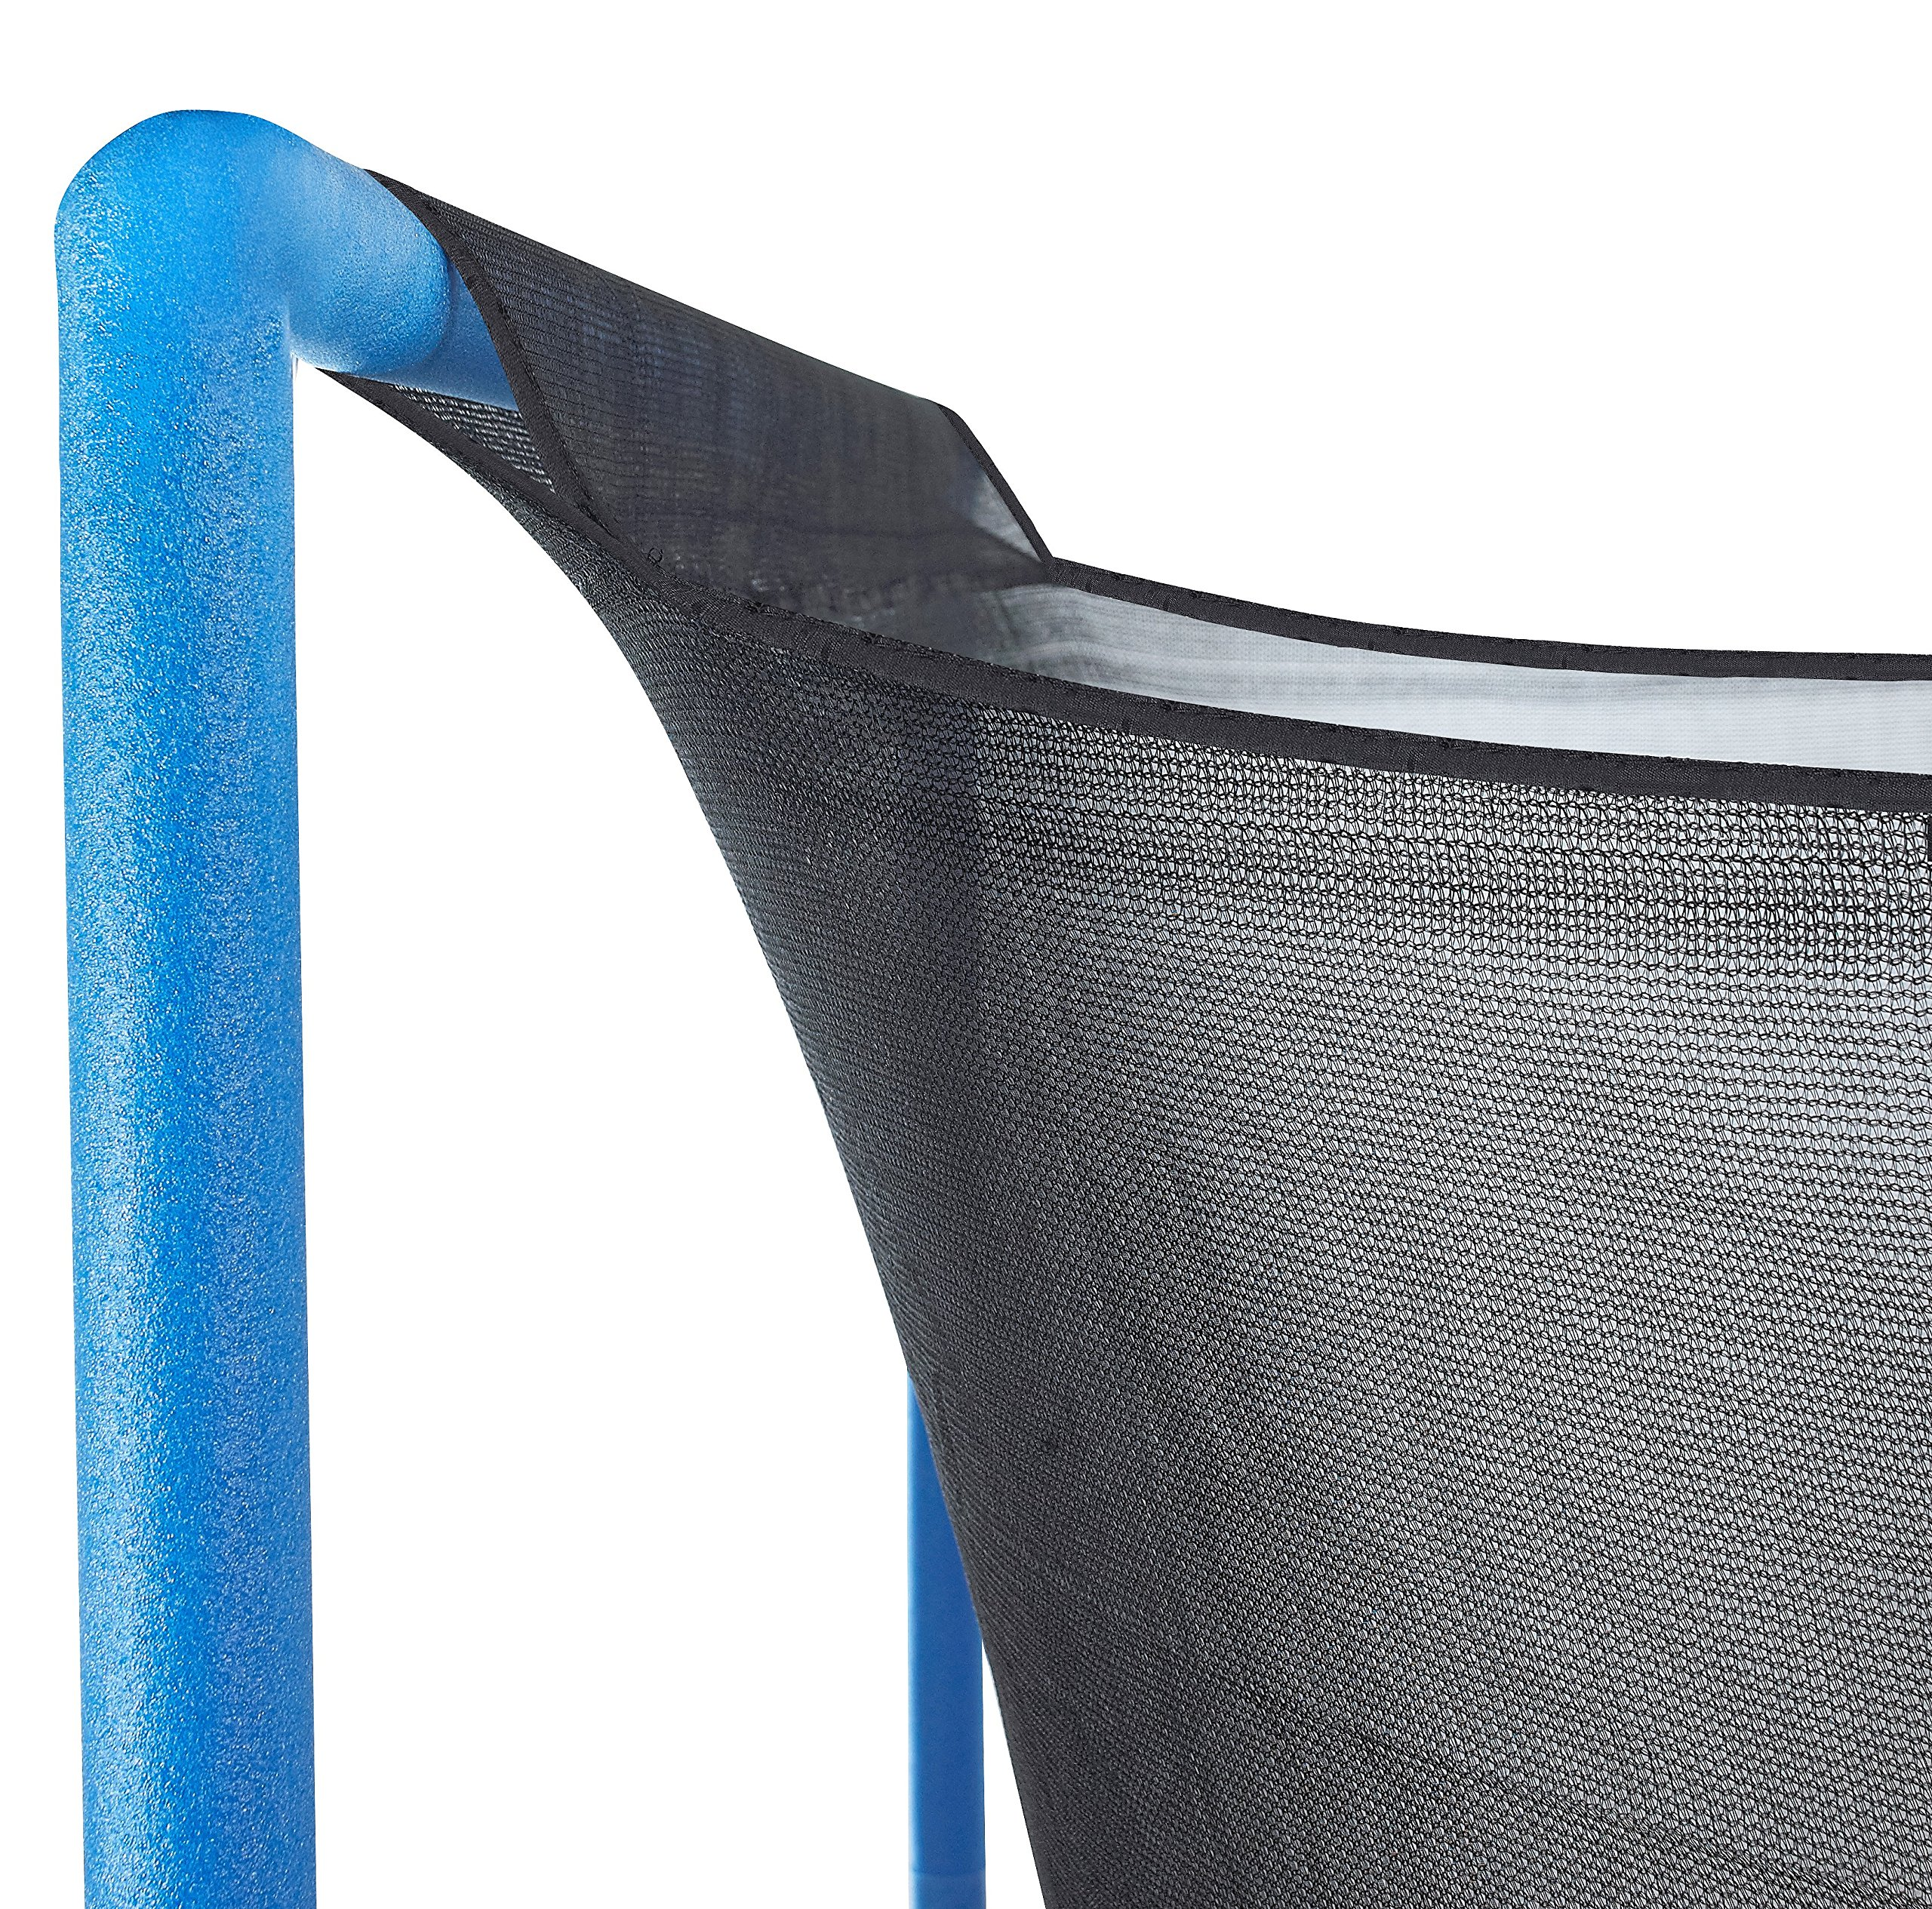 Upper Bounce Trampoline Enclosure Safety Net with Sleeves on top Fits for 15-Feet Round Frame Using 3 Arches (Poles Sold Separately) by Upper Bounce (Image #3)